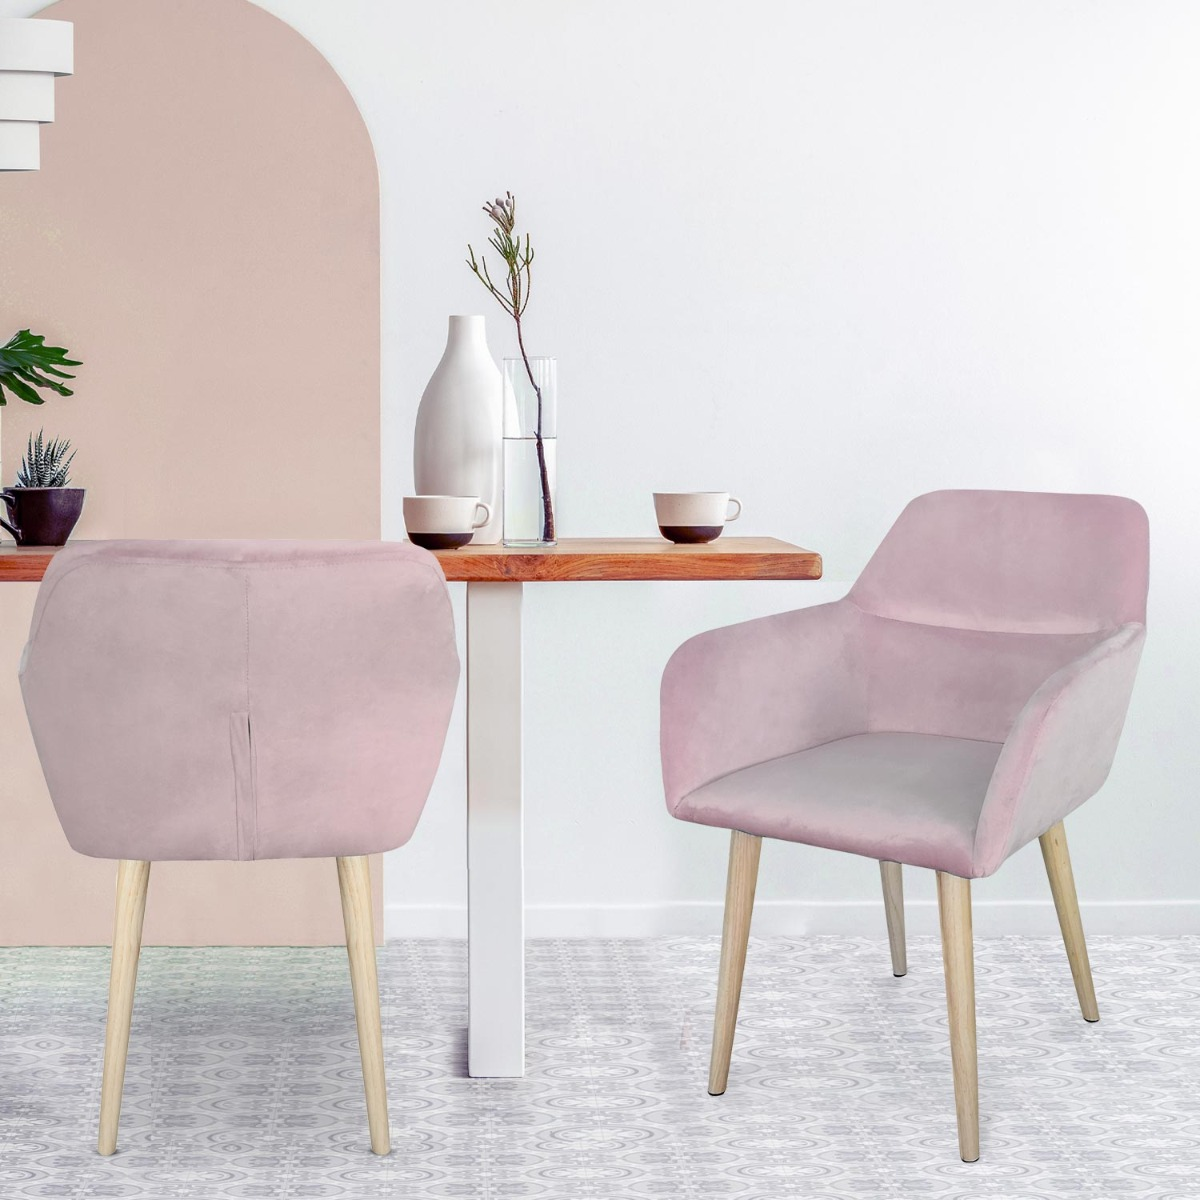 Chaise / Fauteuil scandinave Fraydo Velours Rose